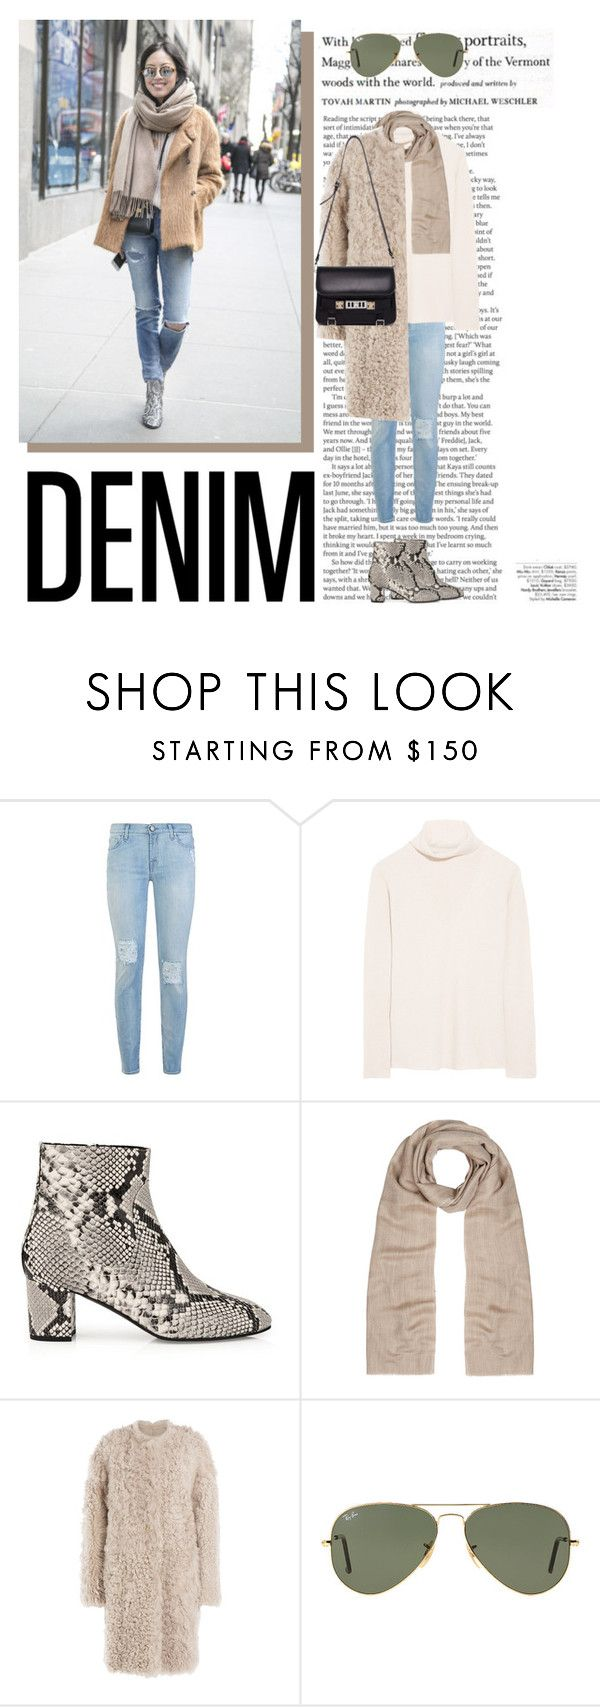 """""""Distressed Denim"""" by katsin90 ❤ liked on Polyvore featuring ASOS, 7 For All Mankind, The Row, L.K.Bennett, Yves Salomon, Ray-Ban, Proenza Schouler, Avenue and distresseddenim"""